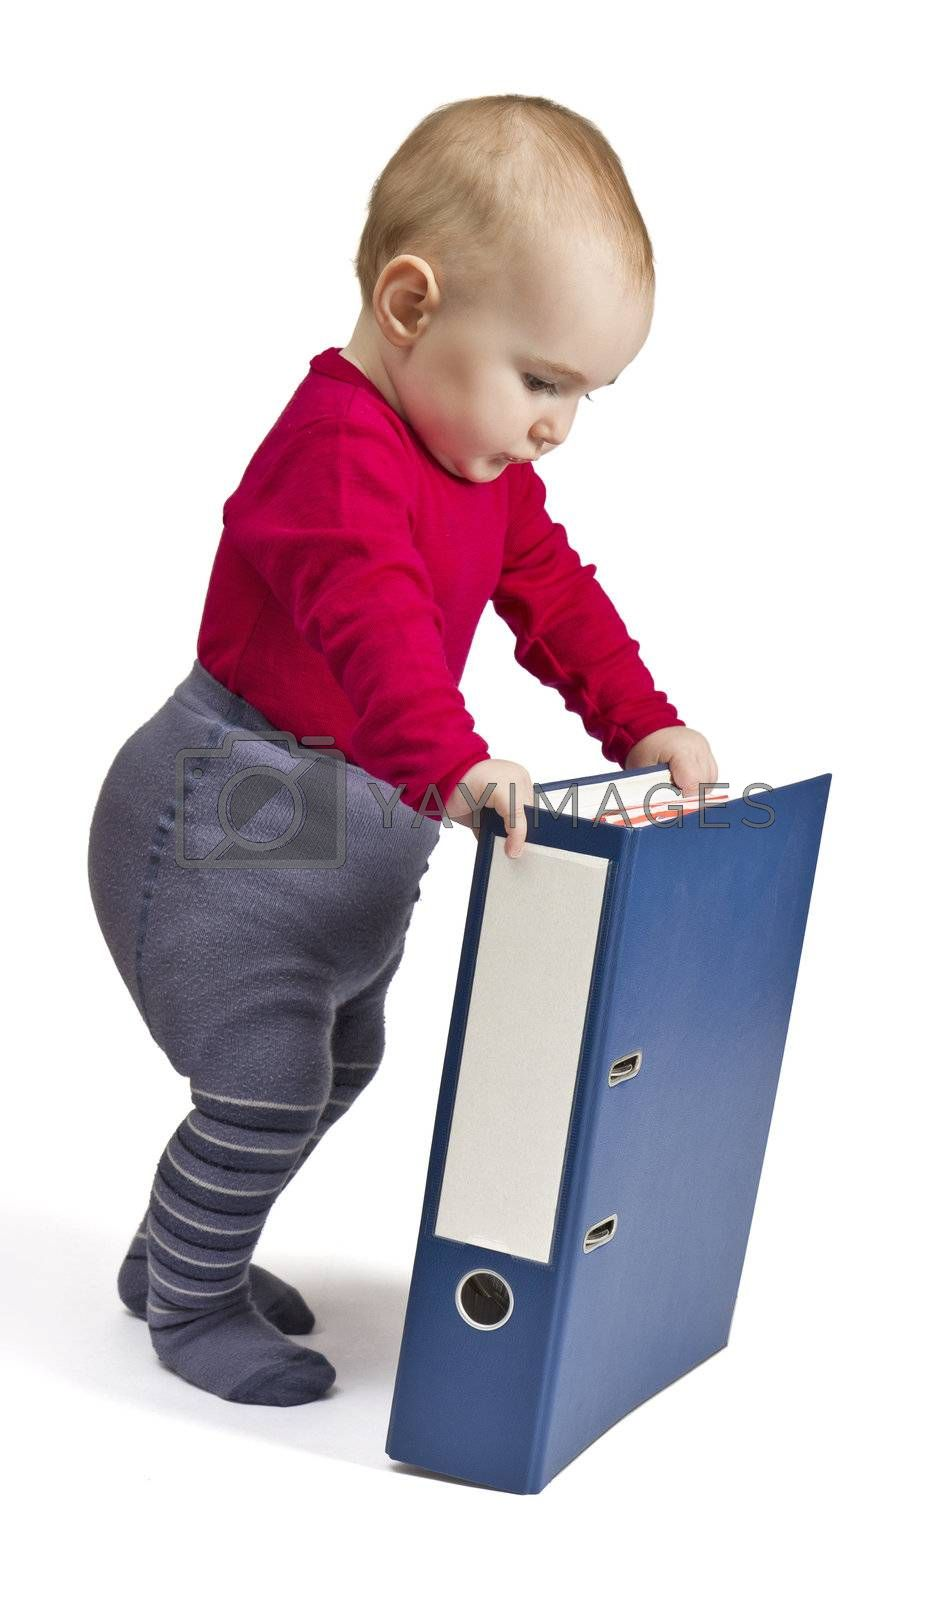 small child in red shirt standing next to blue ring binder. white background with shadow